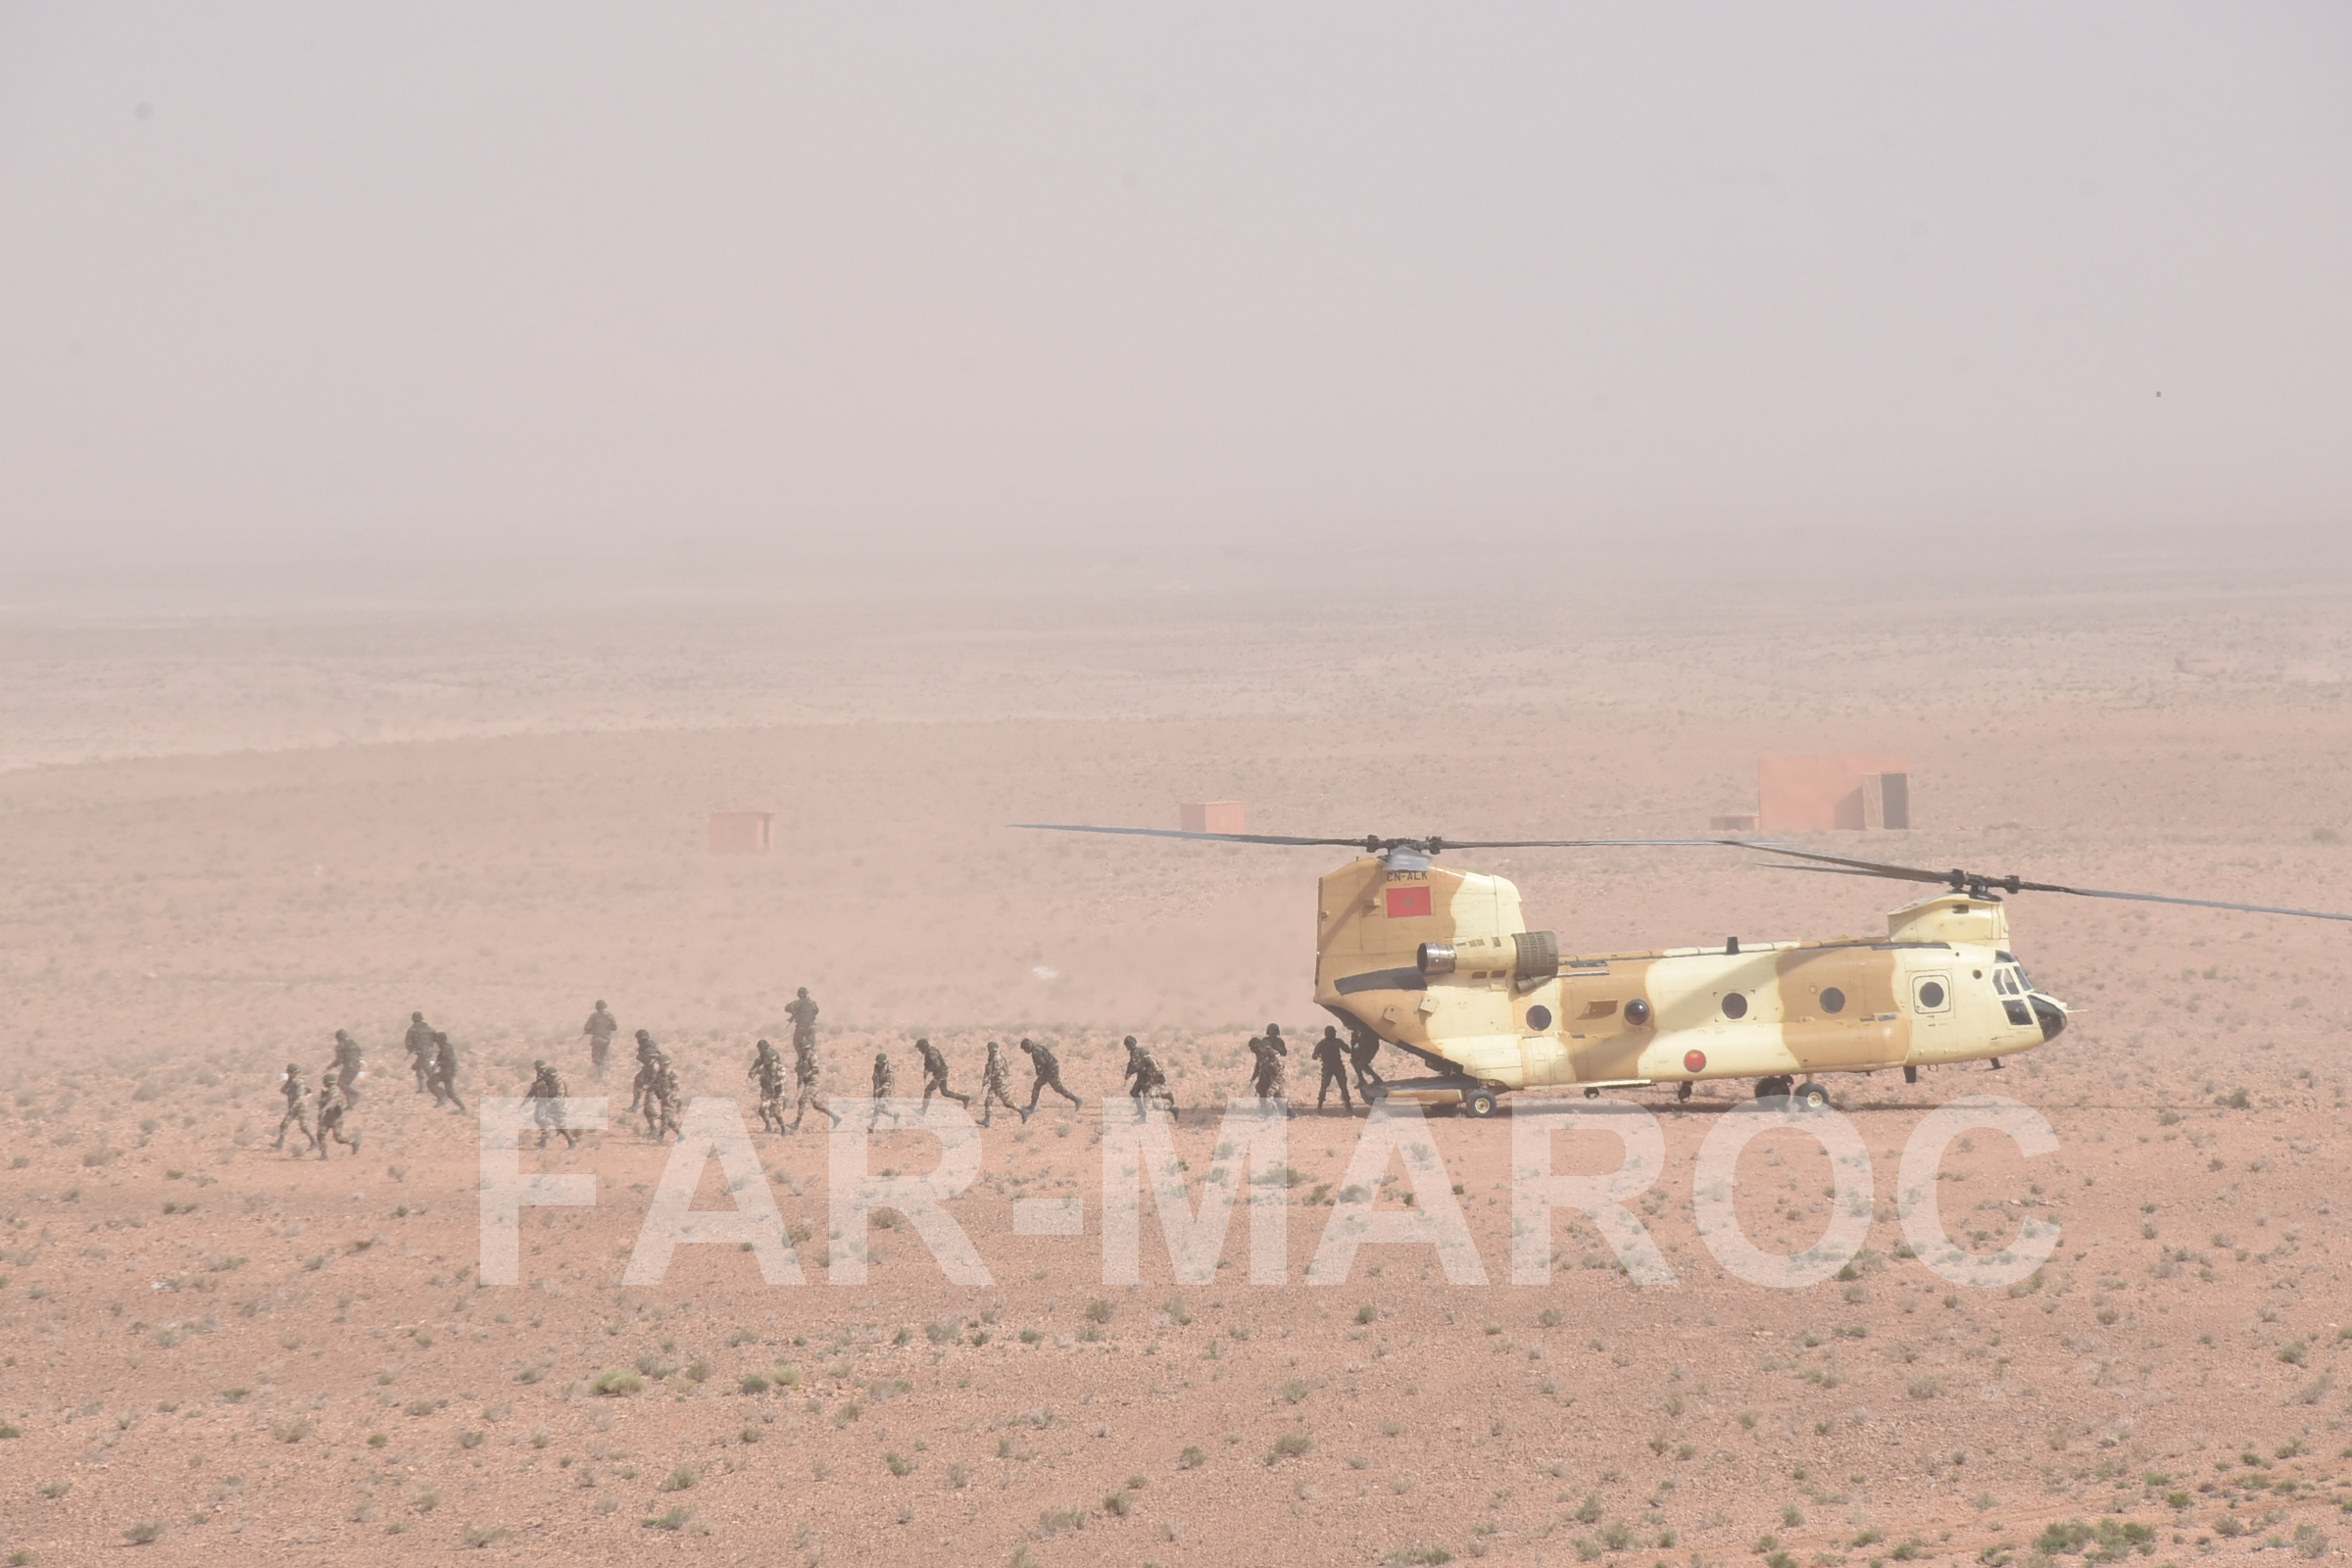 CH-47D CHINOOK des Forces Royales Air  - Page 3 33920839338_79bf0daf62_o